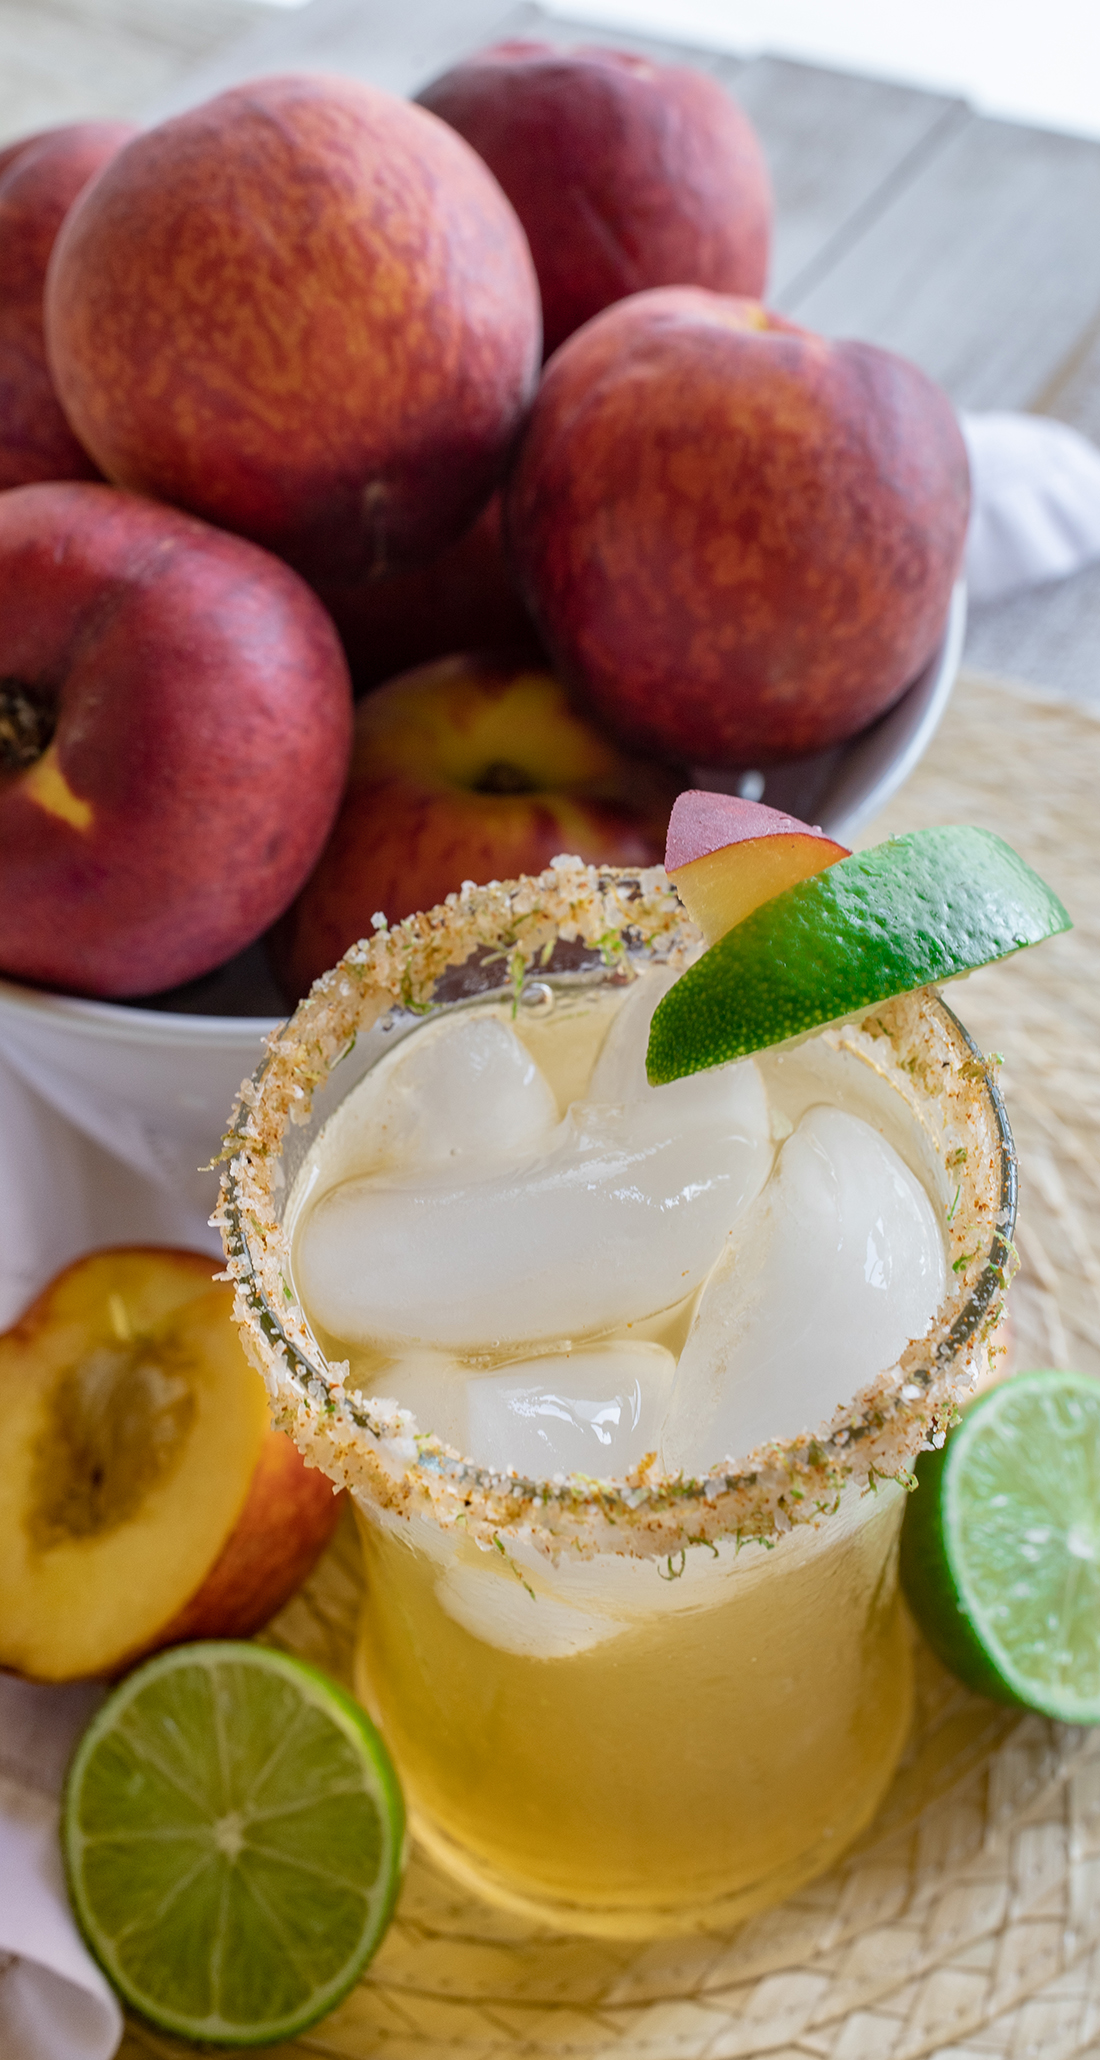 Sweet and spicy flavors abound in this margarita recipe.